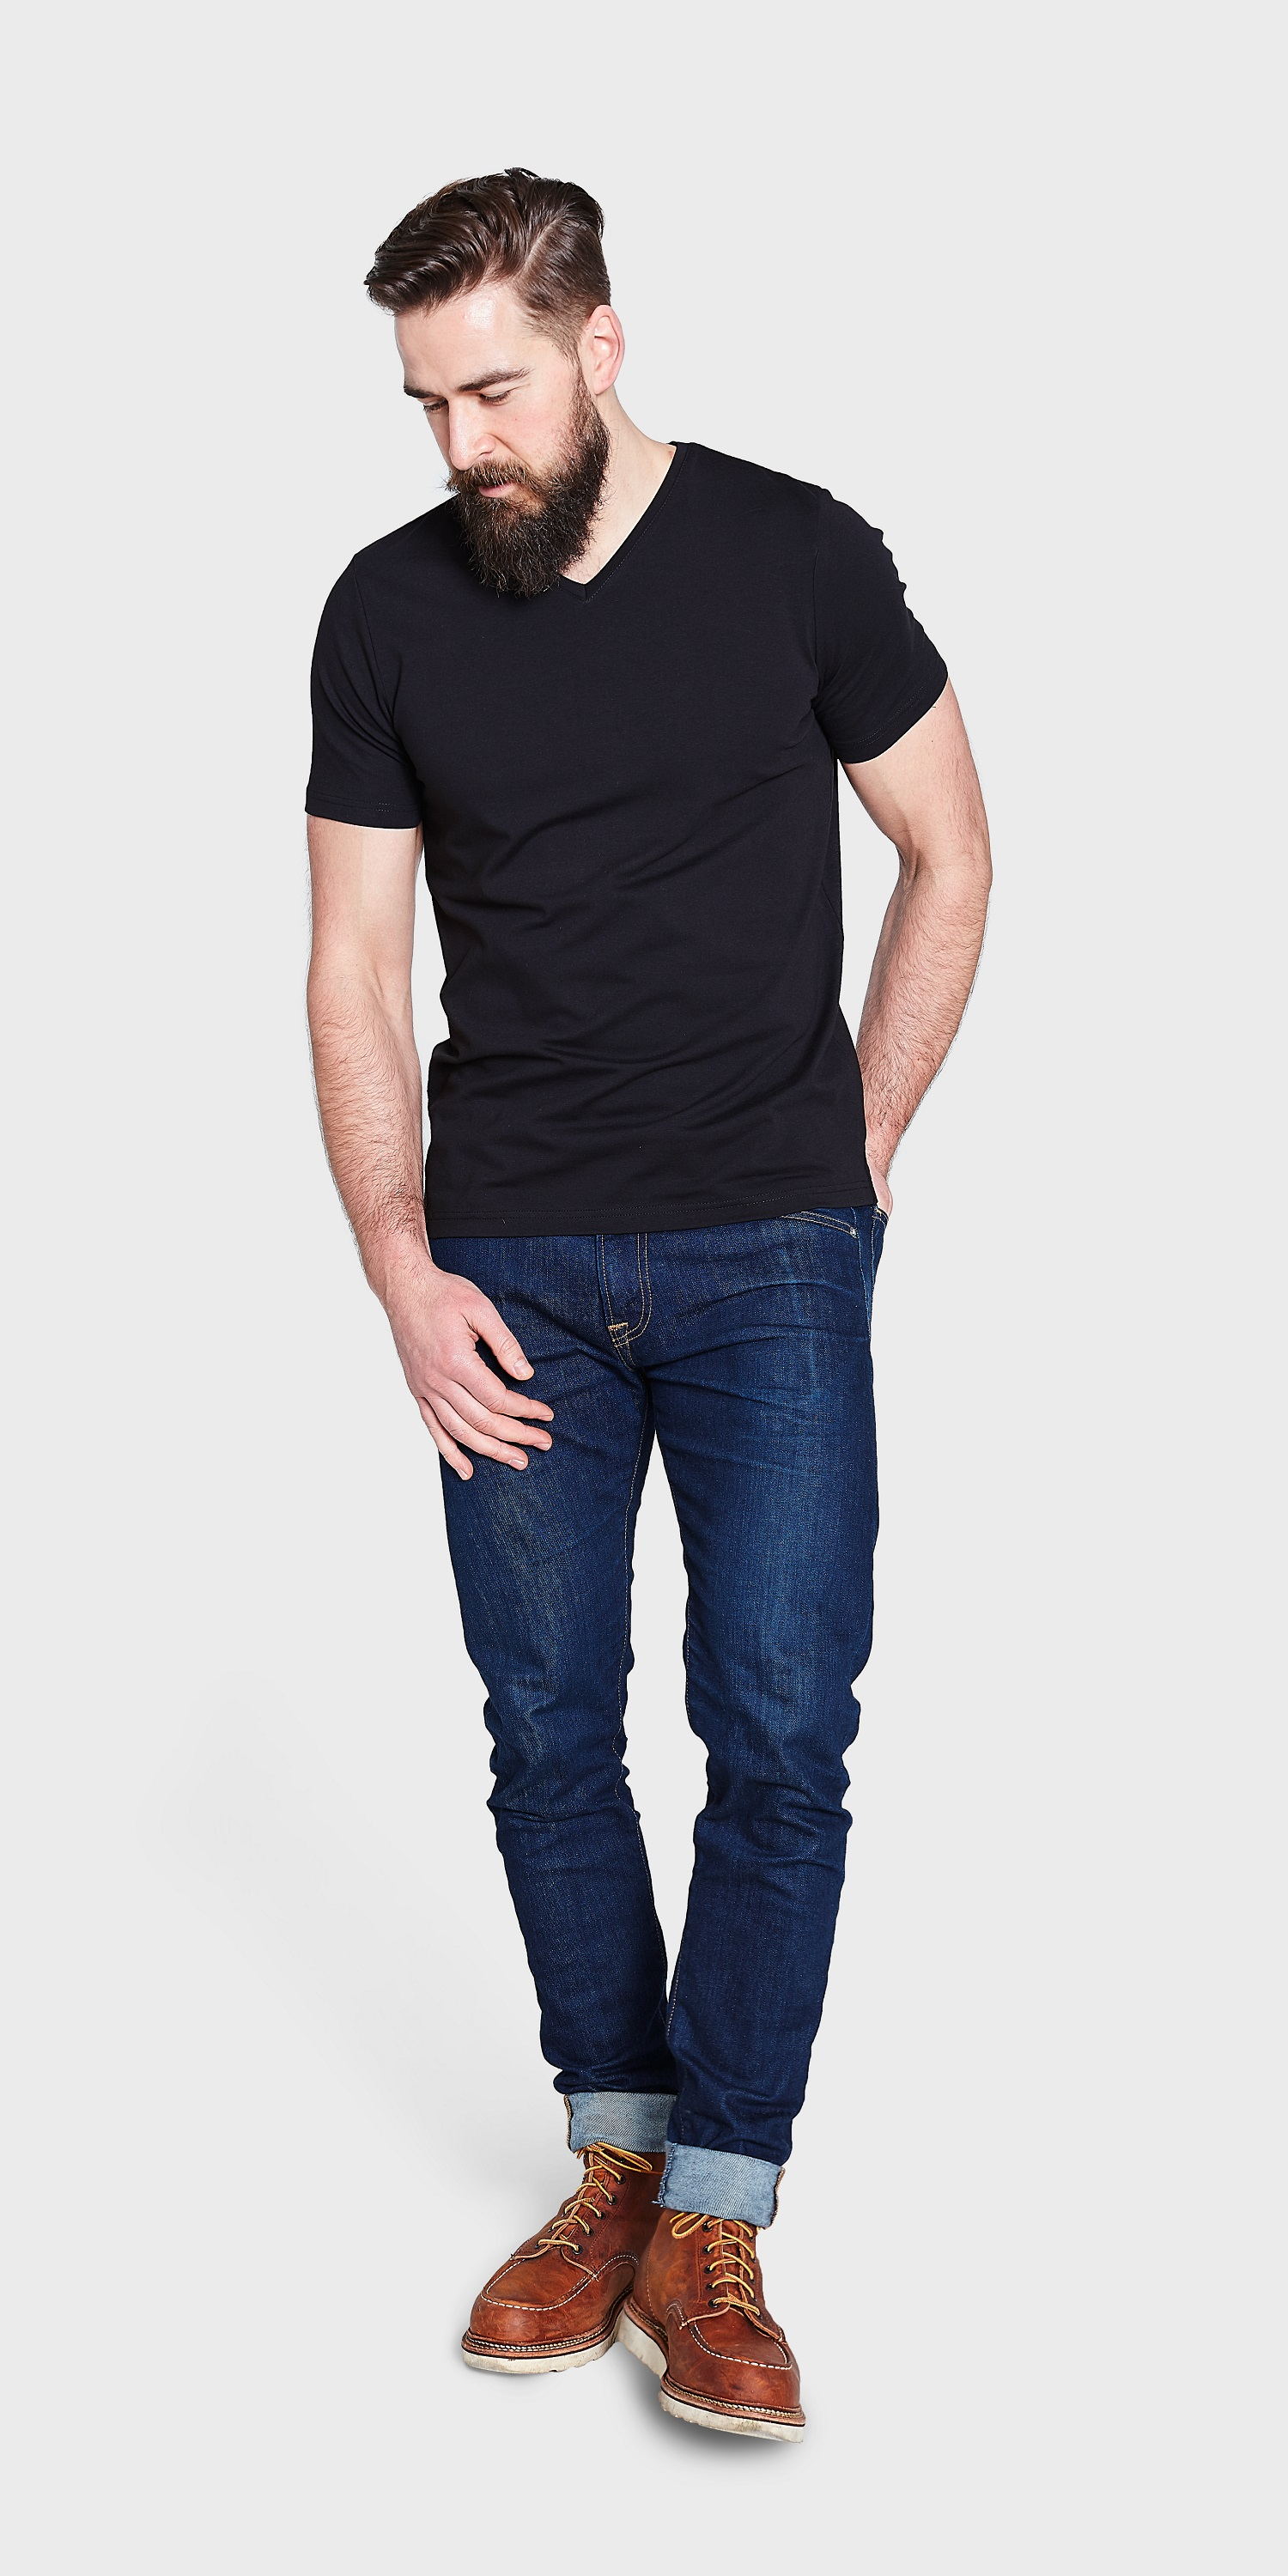 Mens v neck t shirt organic cotton V neck black t shirt